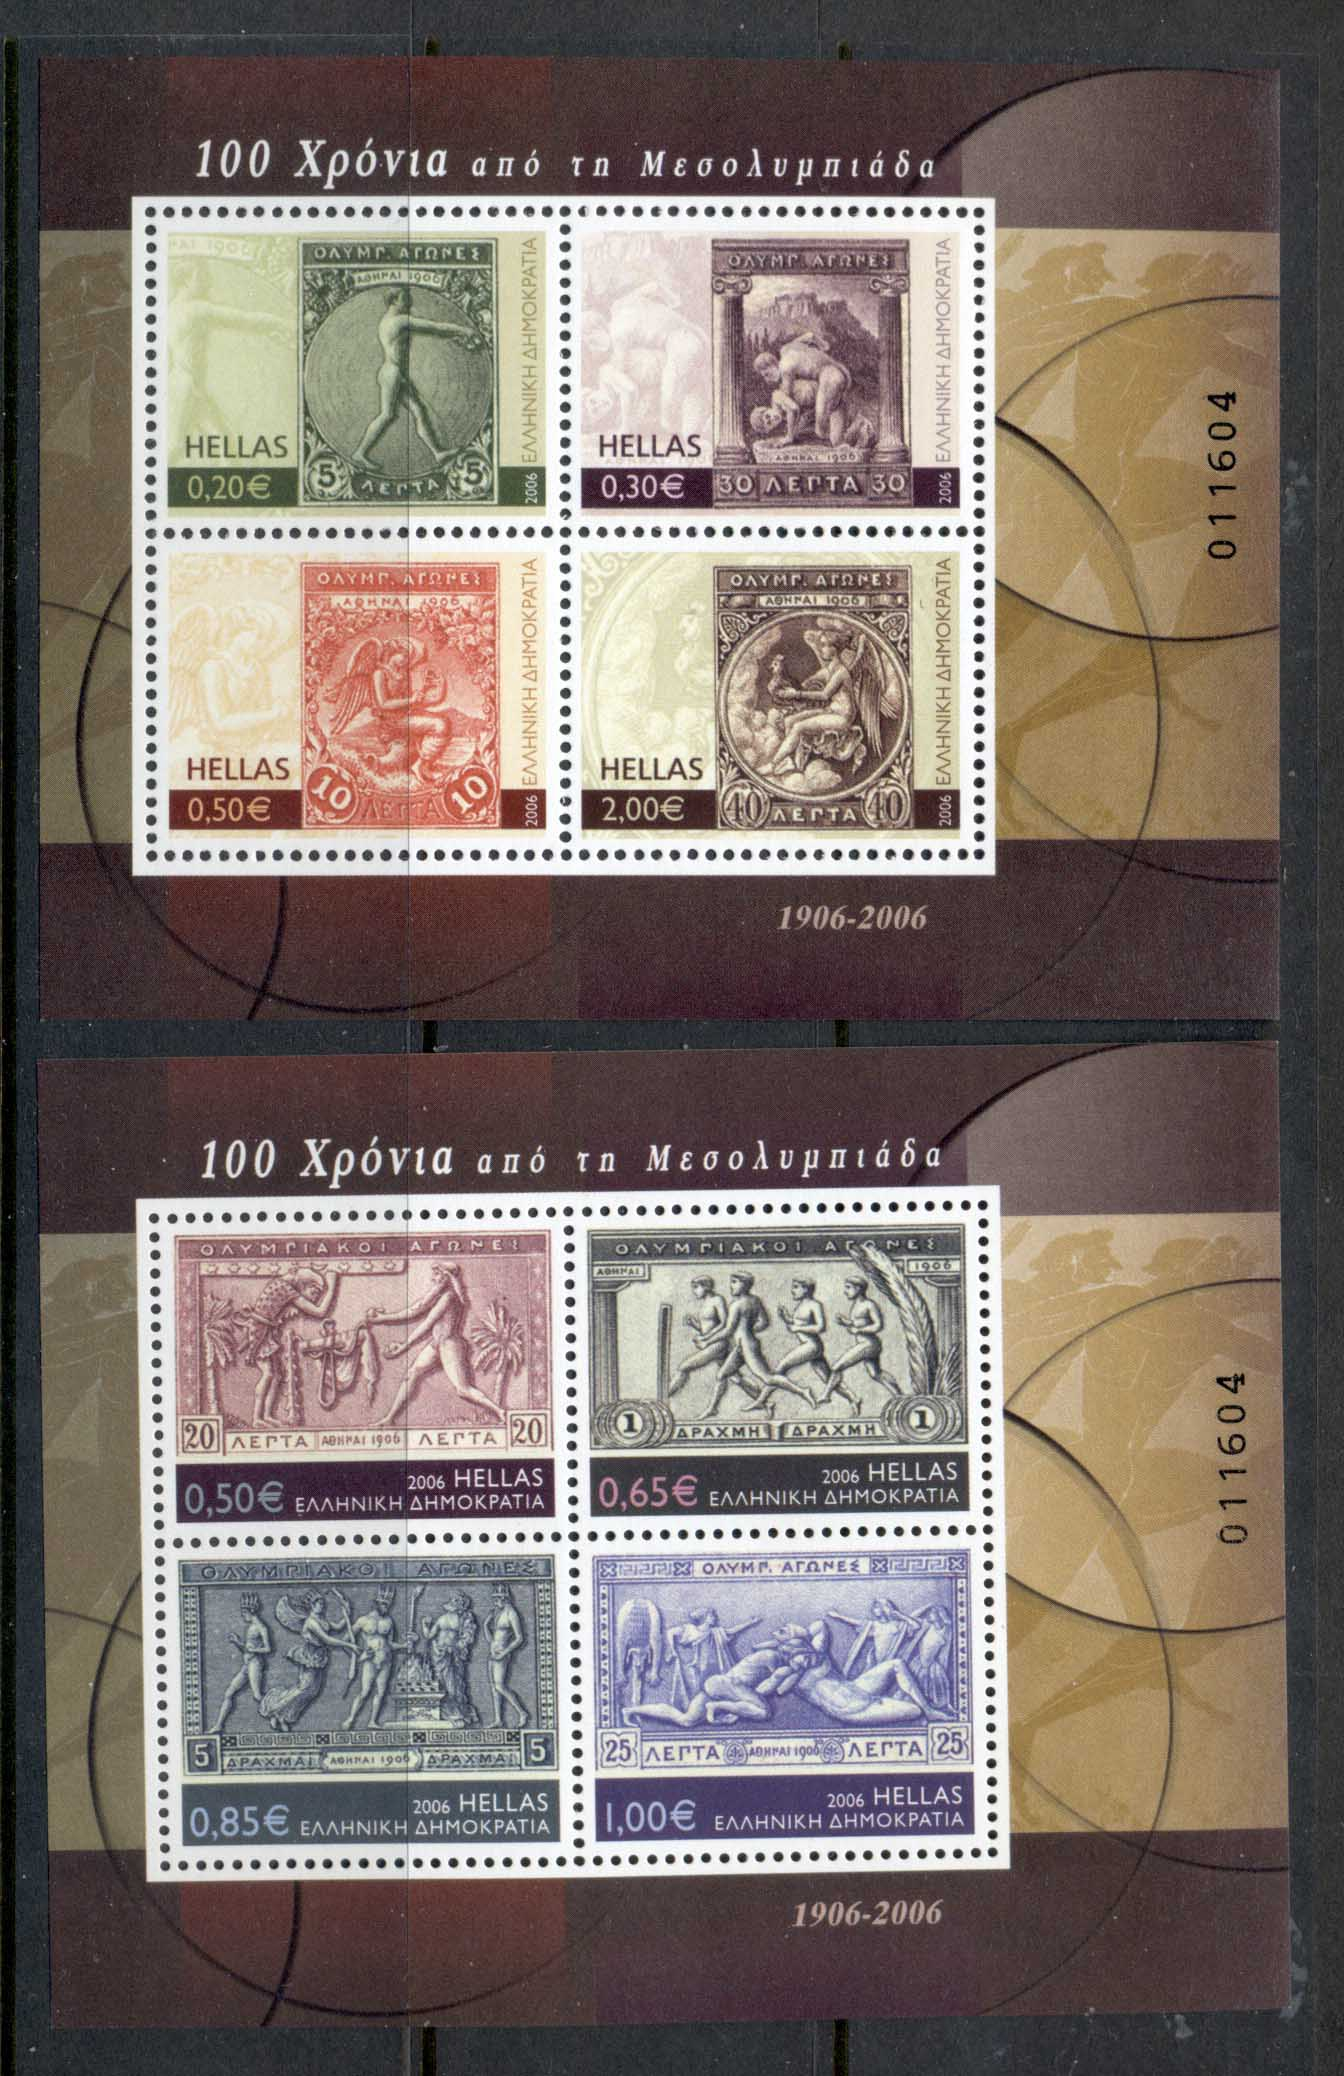 Greece 2006 Olympic Stamps 2x MS MUH